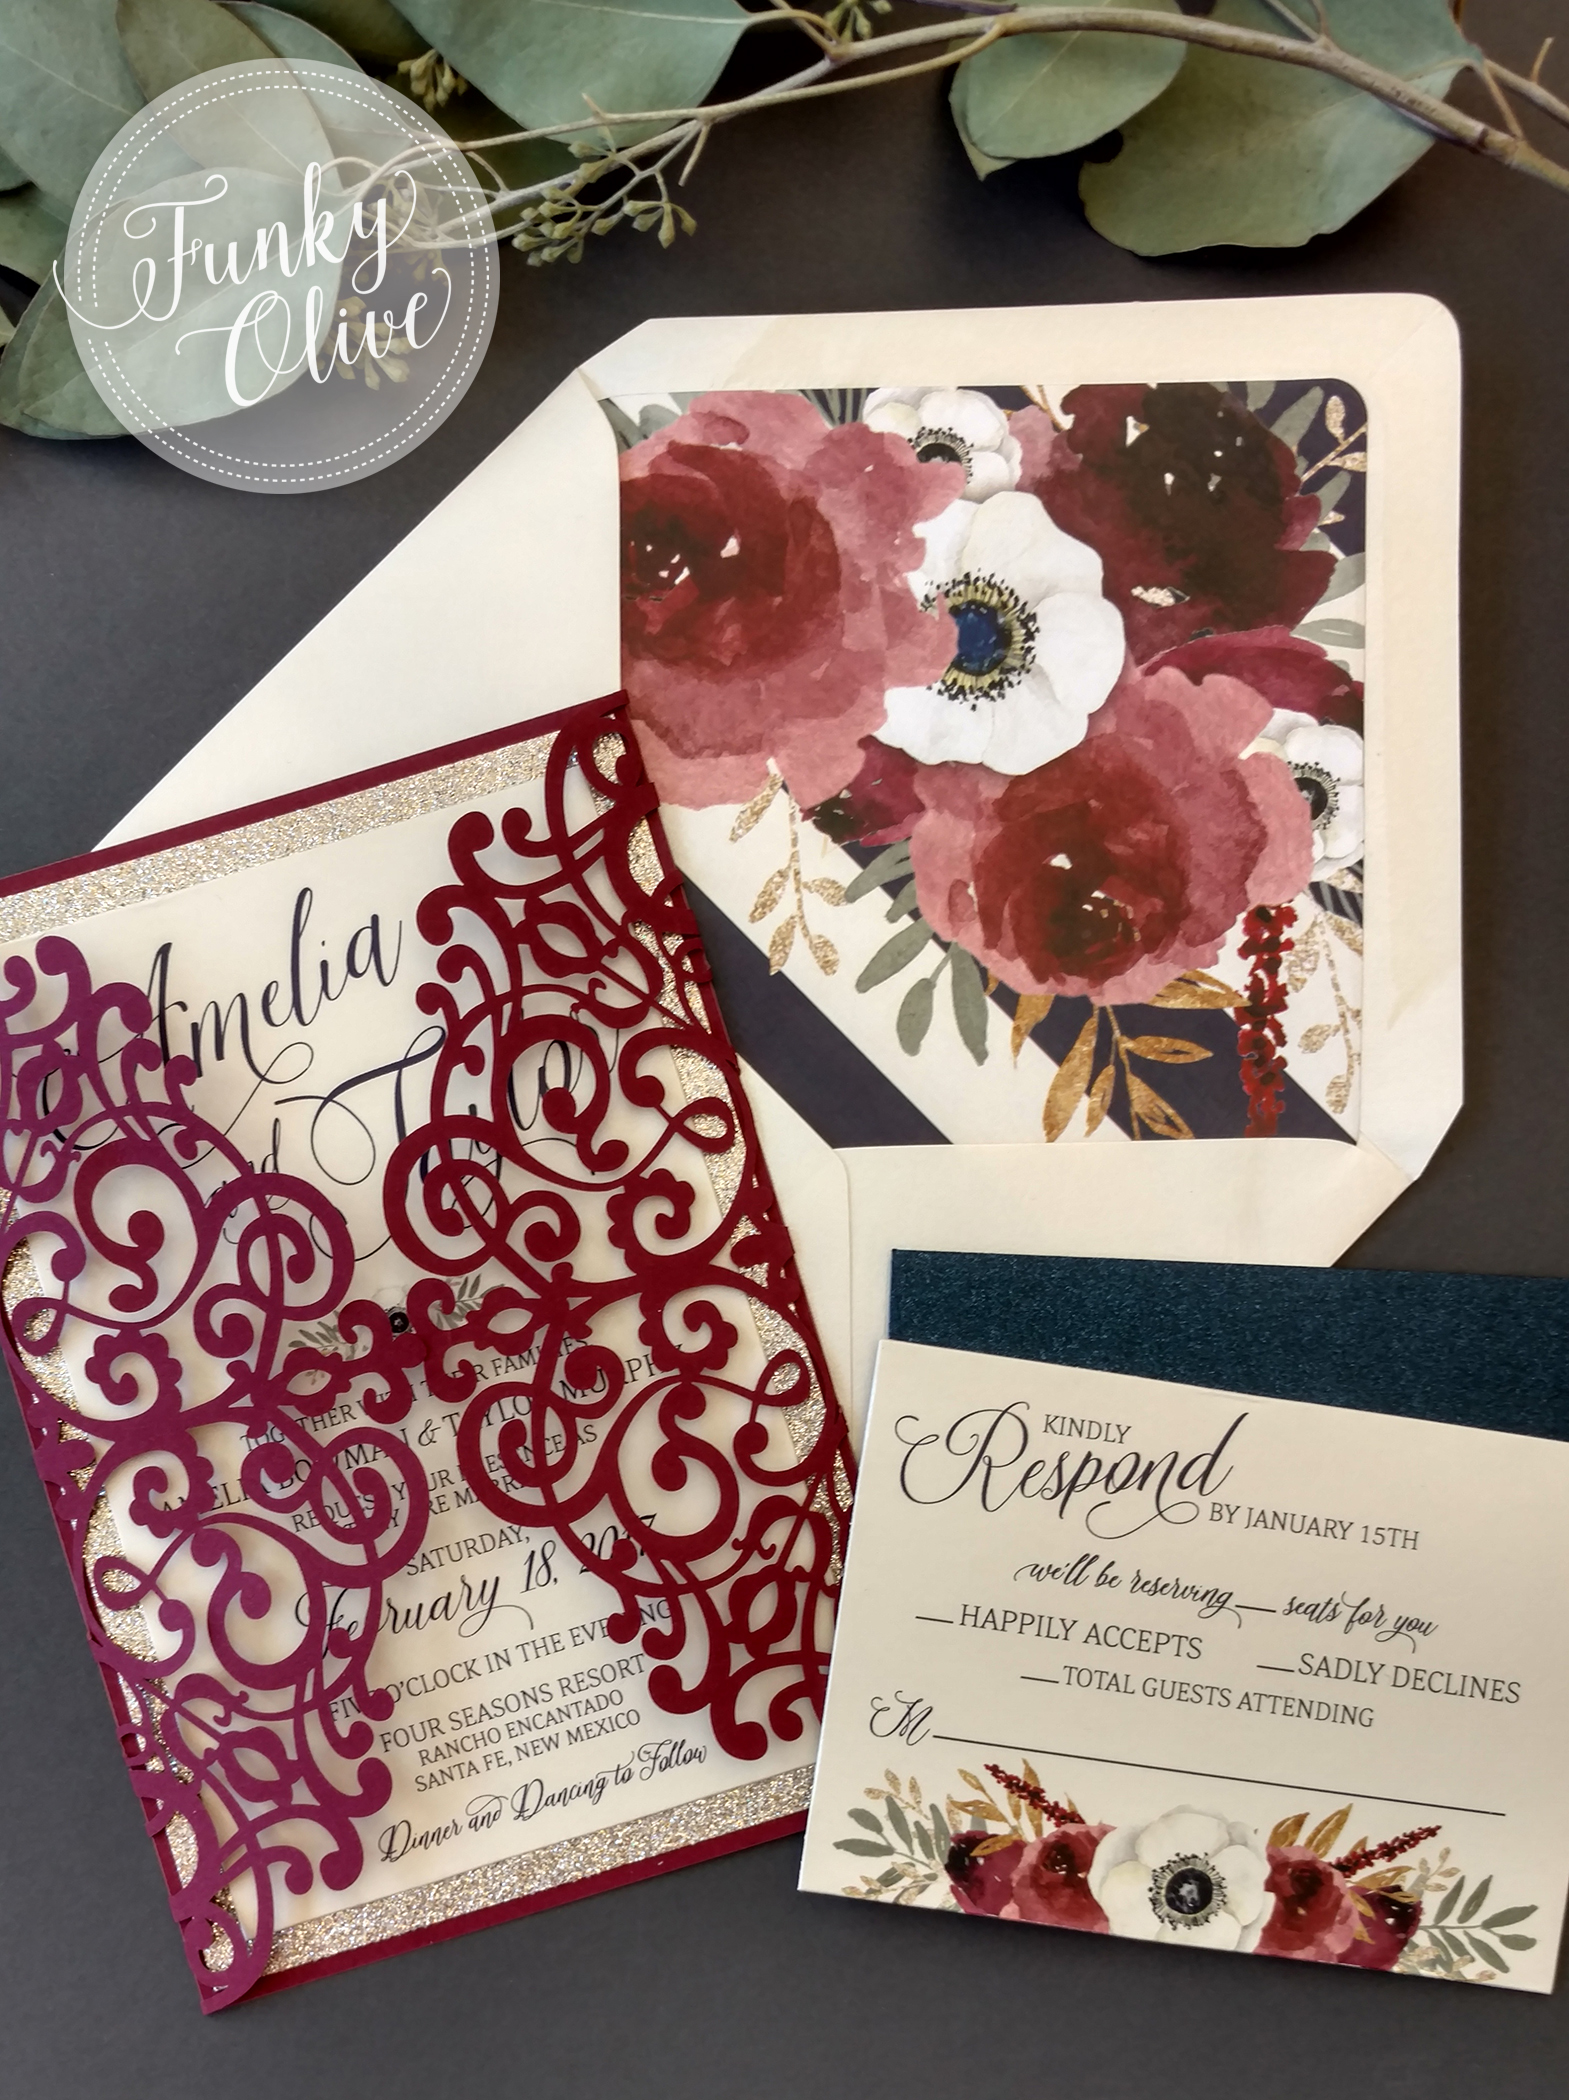 The navy plays well as our base ink color and as a bold striping on the floral envelope liner, while the sparkling navy response envelopes add the perfect balance to the burgundy laser cut enclosure.